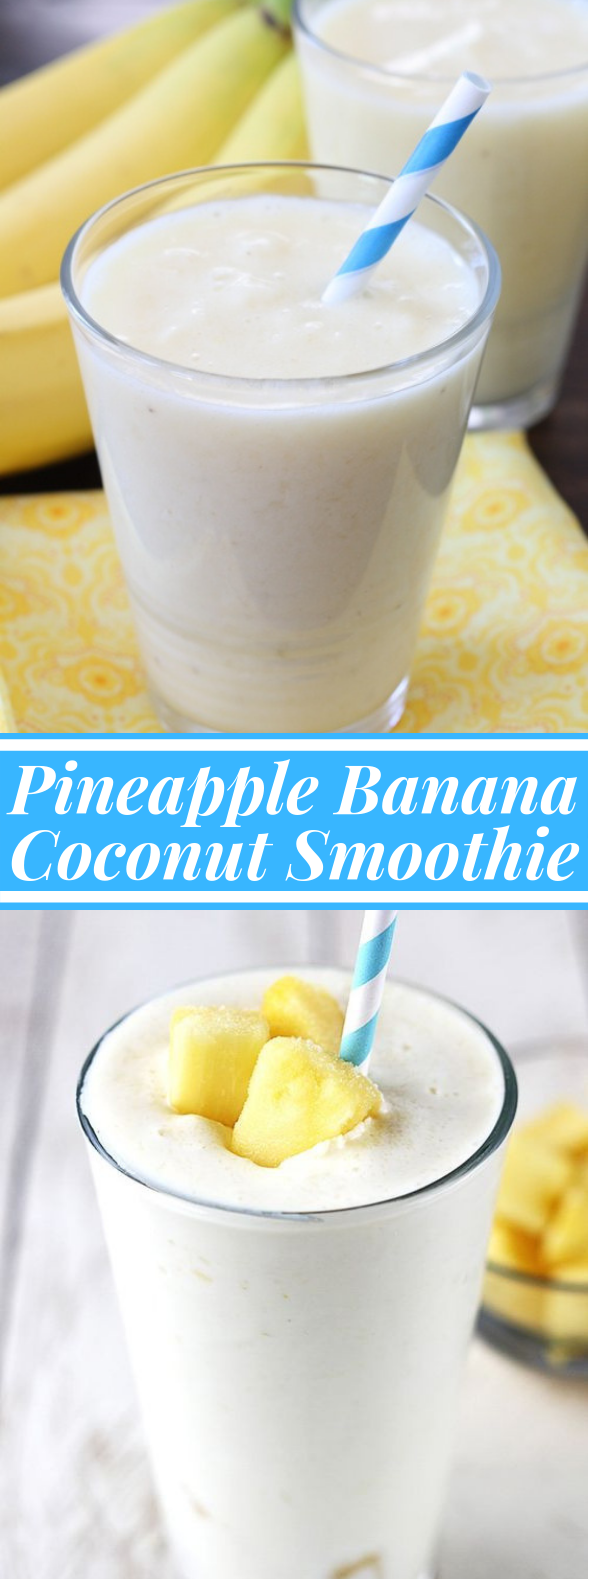 Pineapple, Banana, and Coconut Smoothie #drink #juice